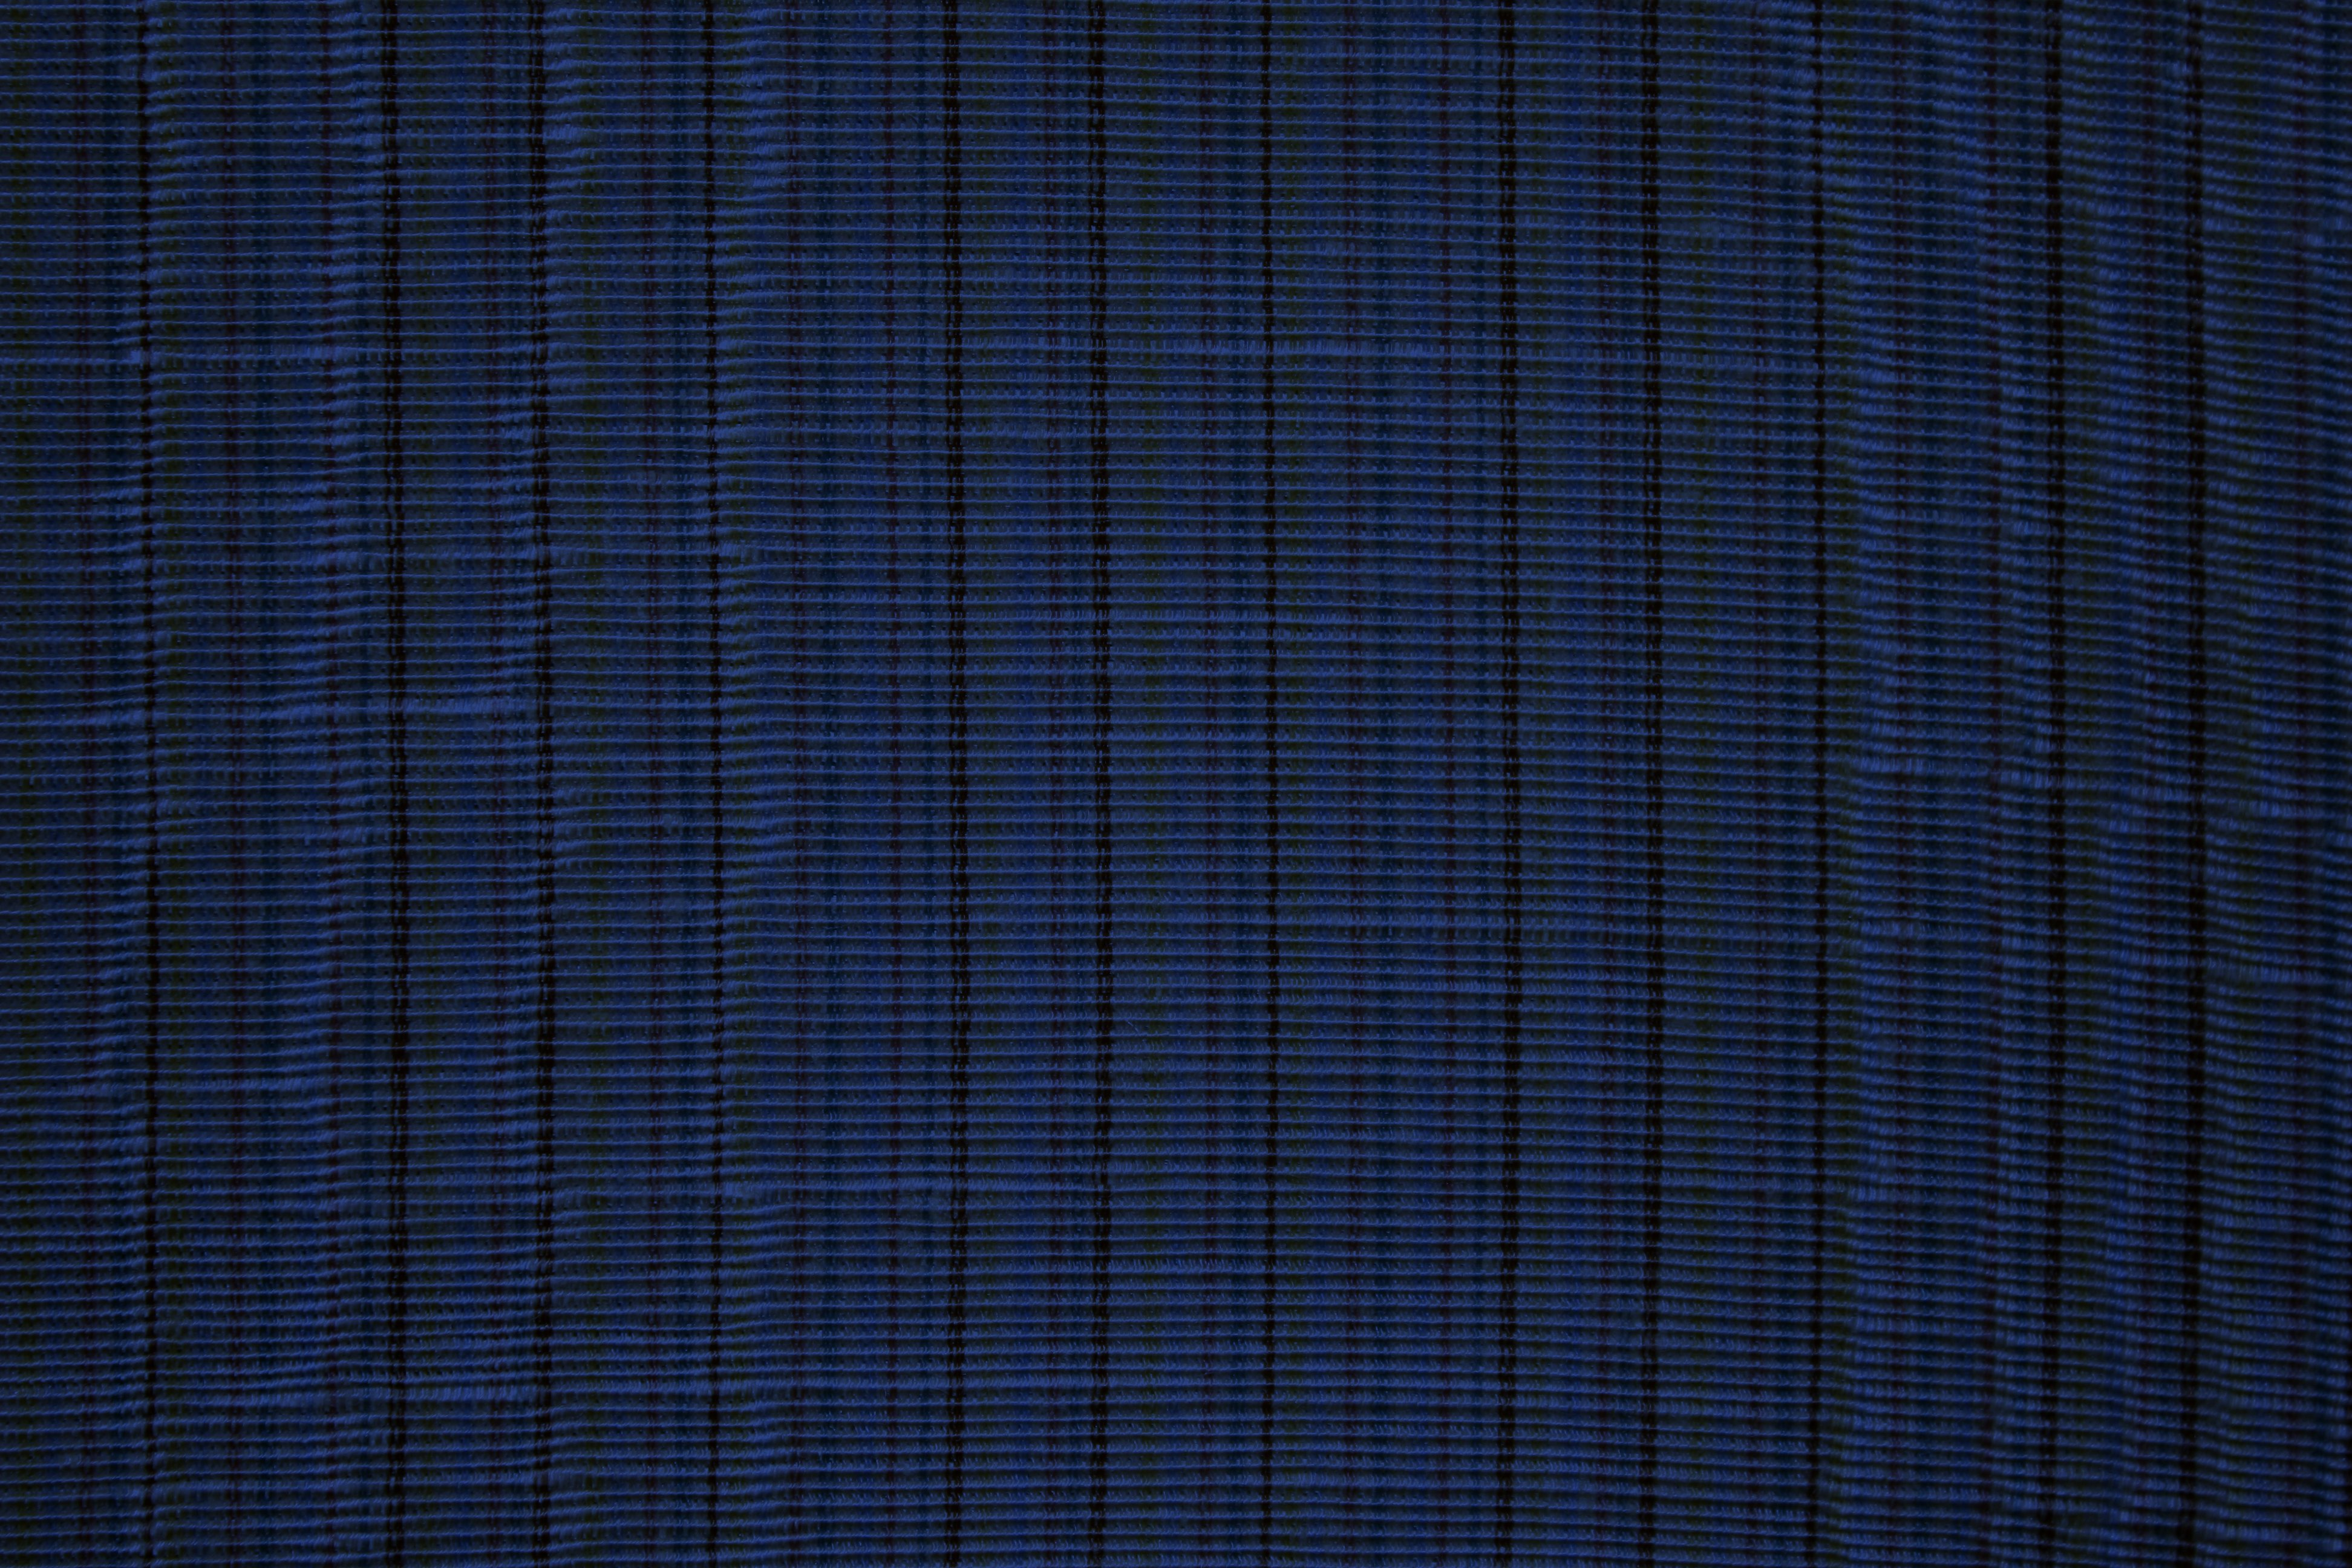 Navy Blue Upholstery Fabric Texture with Stripes Dimensions 3888 3888x2592